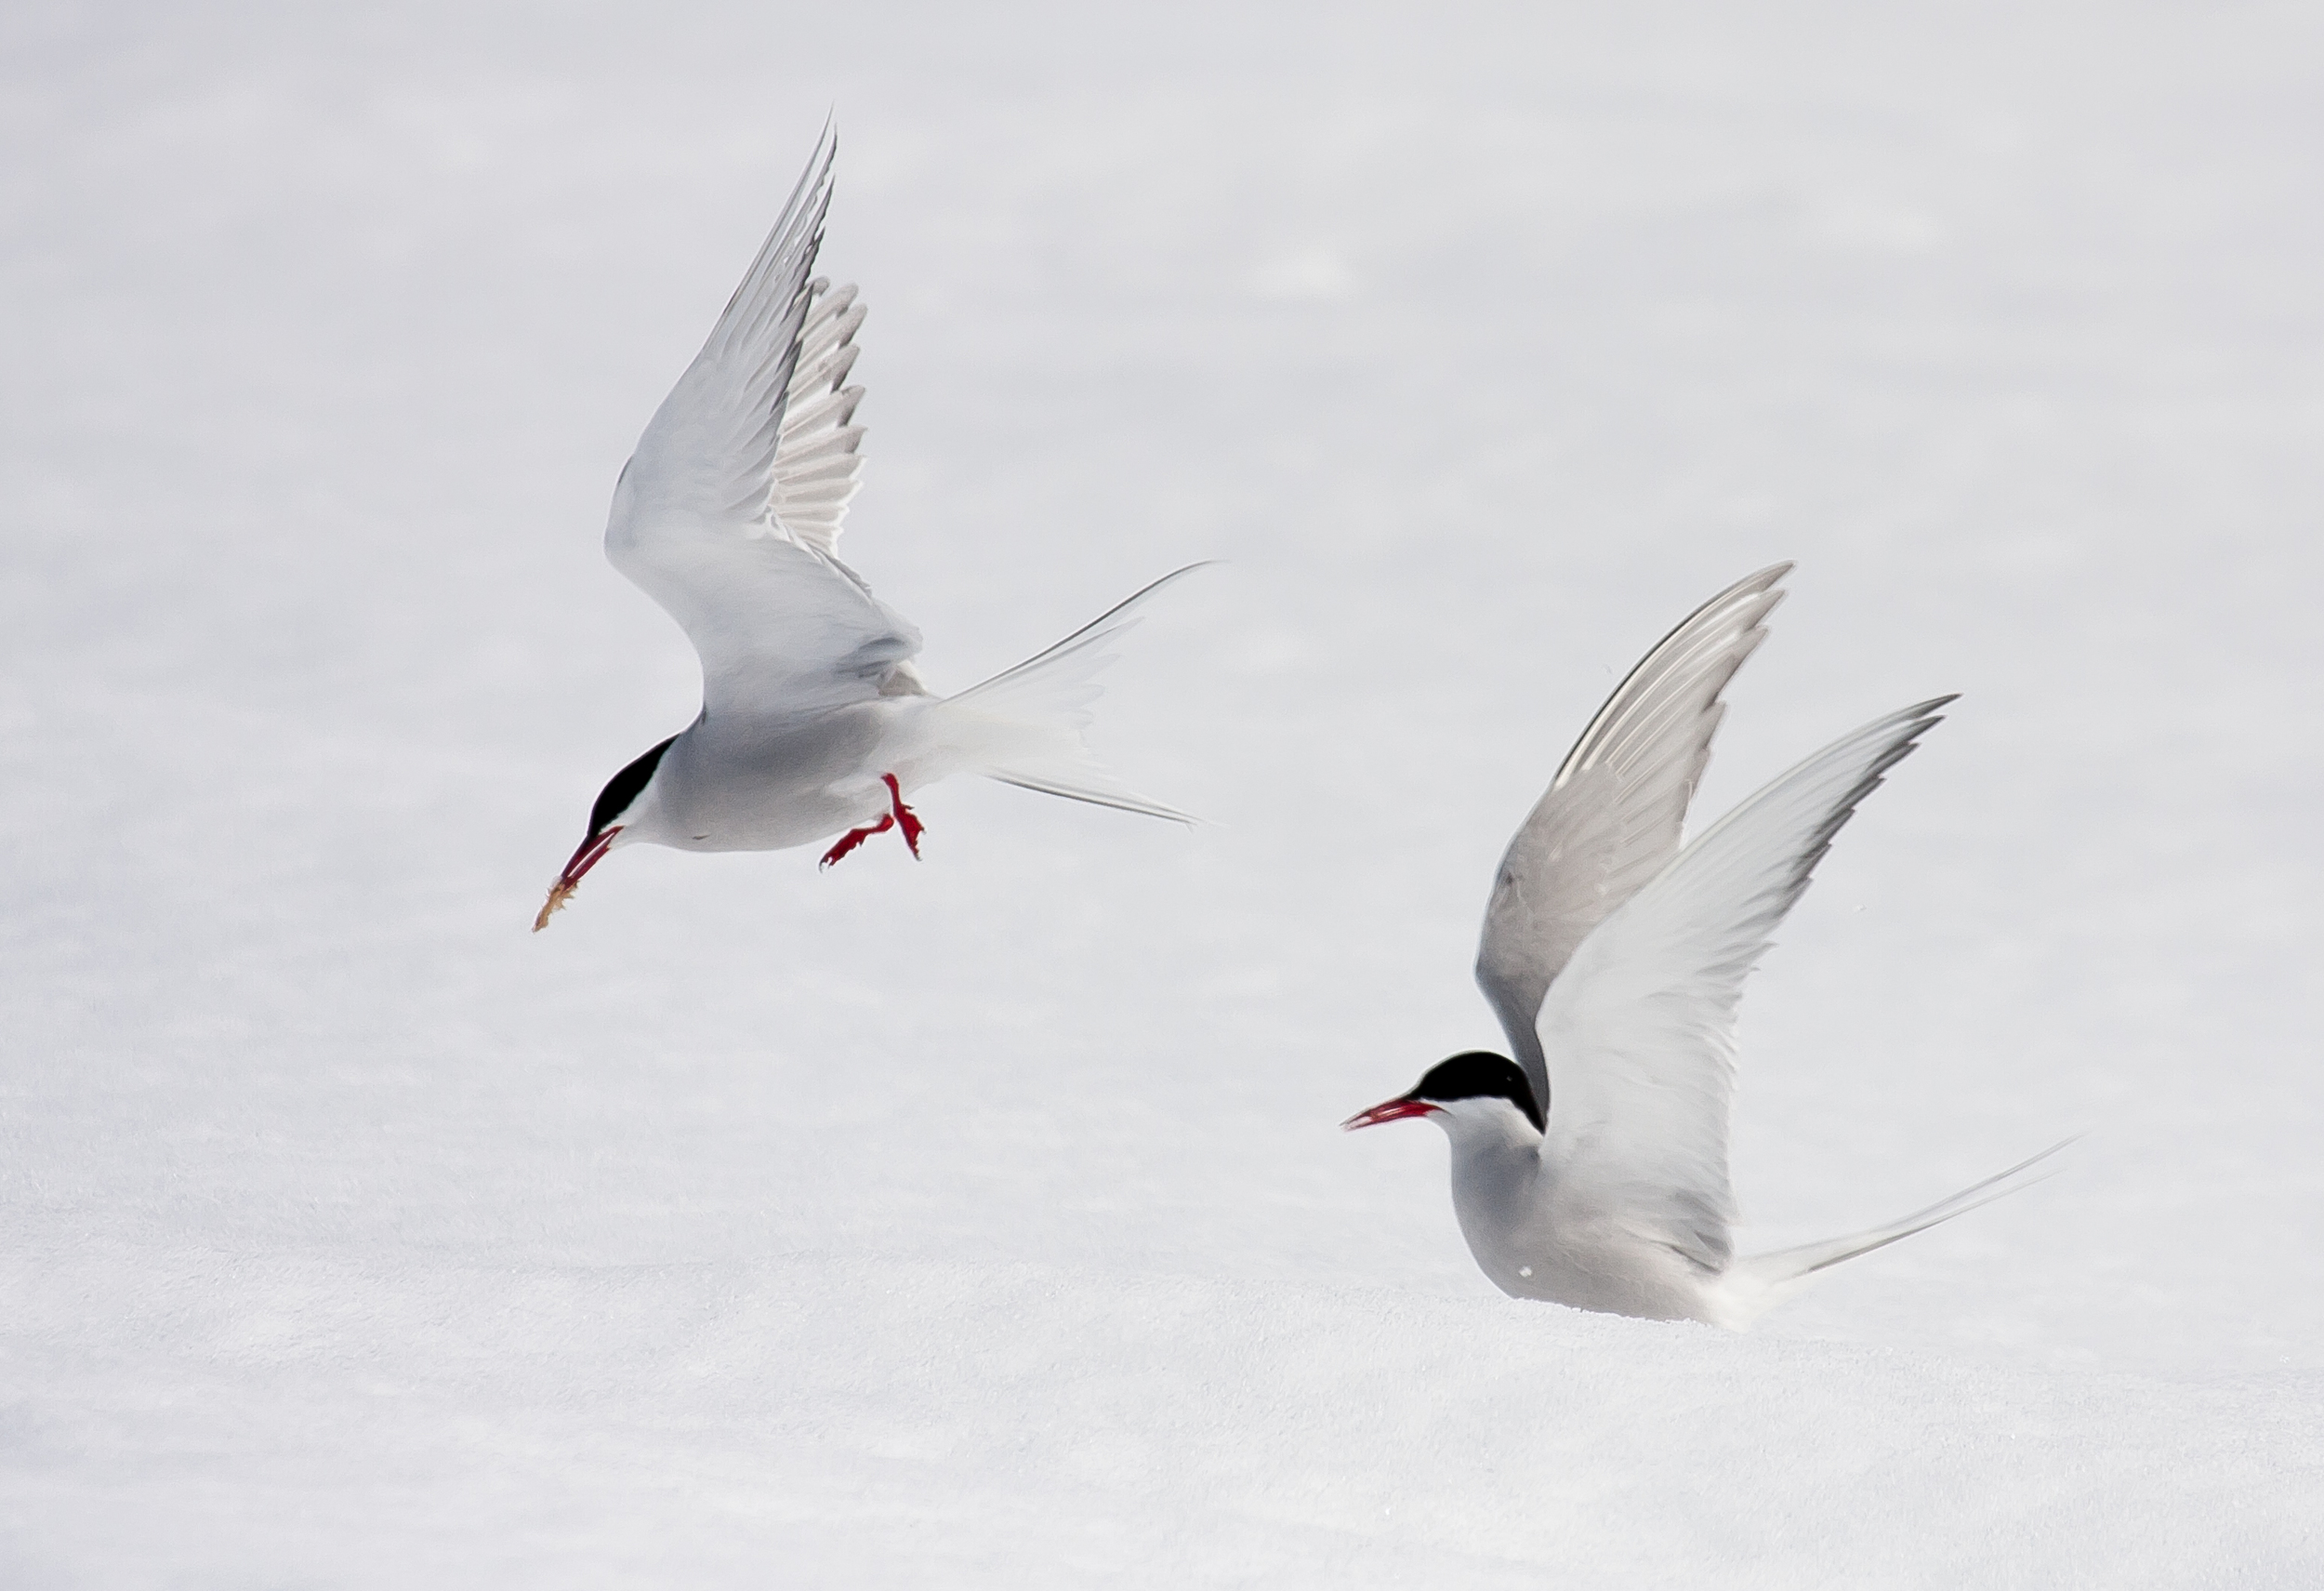 Arctic terns are the focus of a long-term monitoring project on Nasaruvaalik Island since 2007. These amazing birds migrate up to  90,000  km annually between their breeding grounds in the north and their wintering areas near Antarctica. Working with terns requires an iron will and protective headgear, as entire colonies band together to mob predators and scientists alike, dive-bombing their target with deadly accuracy (and the bird version of glee).